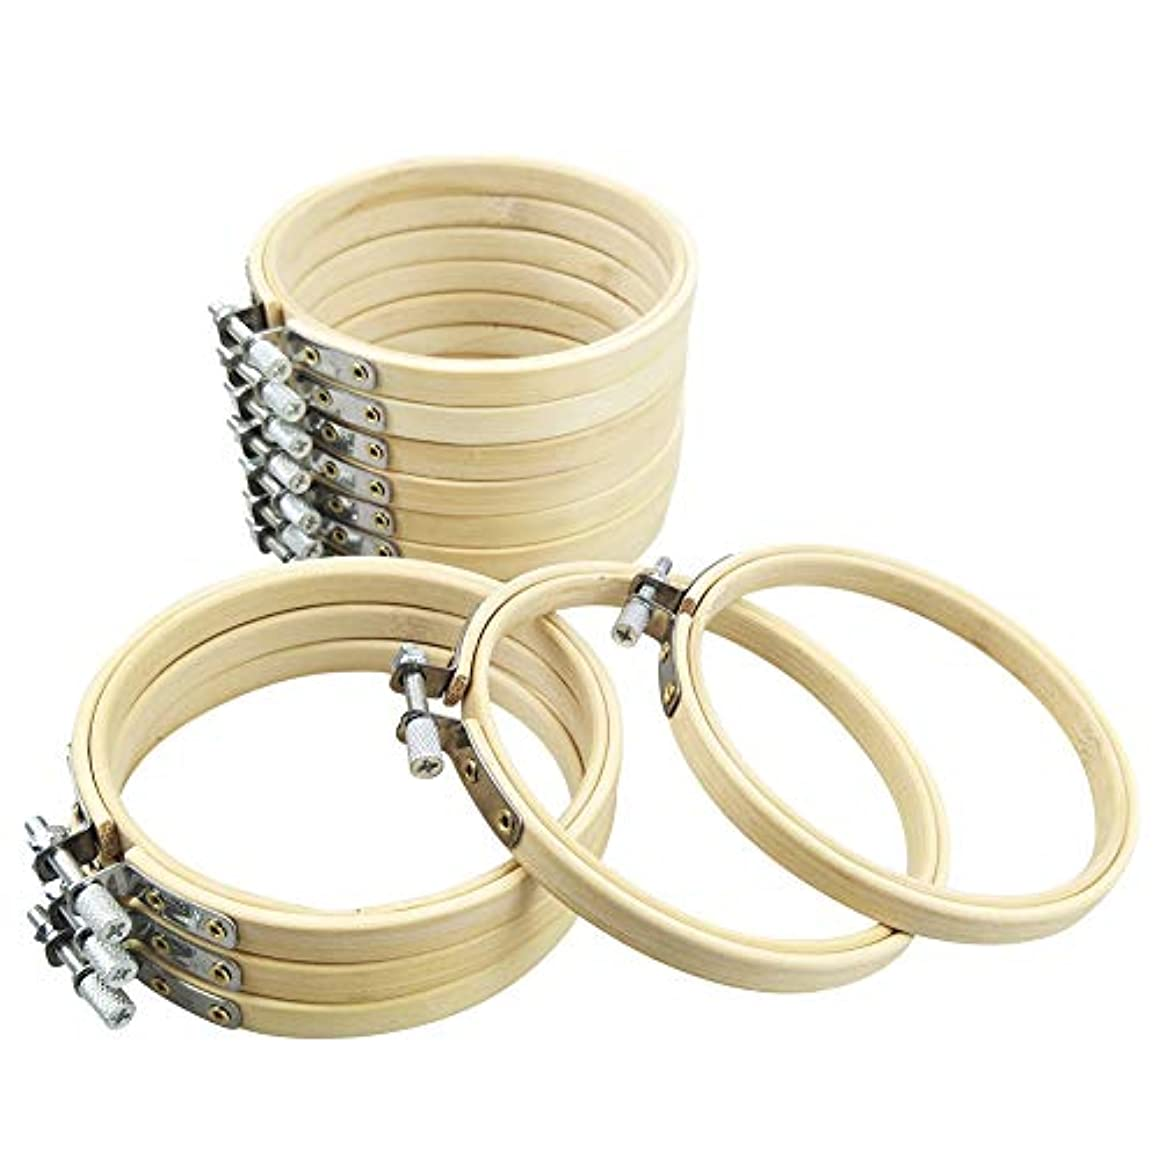 Sibosen 4 Inch Round Embroidery Hoop Bulk Wholesale 12 Pieces Bamboo Circle Cross Stitch Hoop Ring